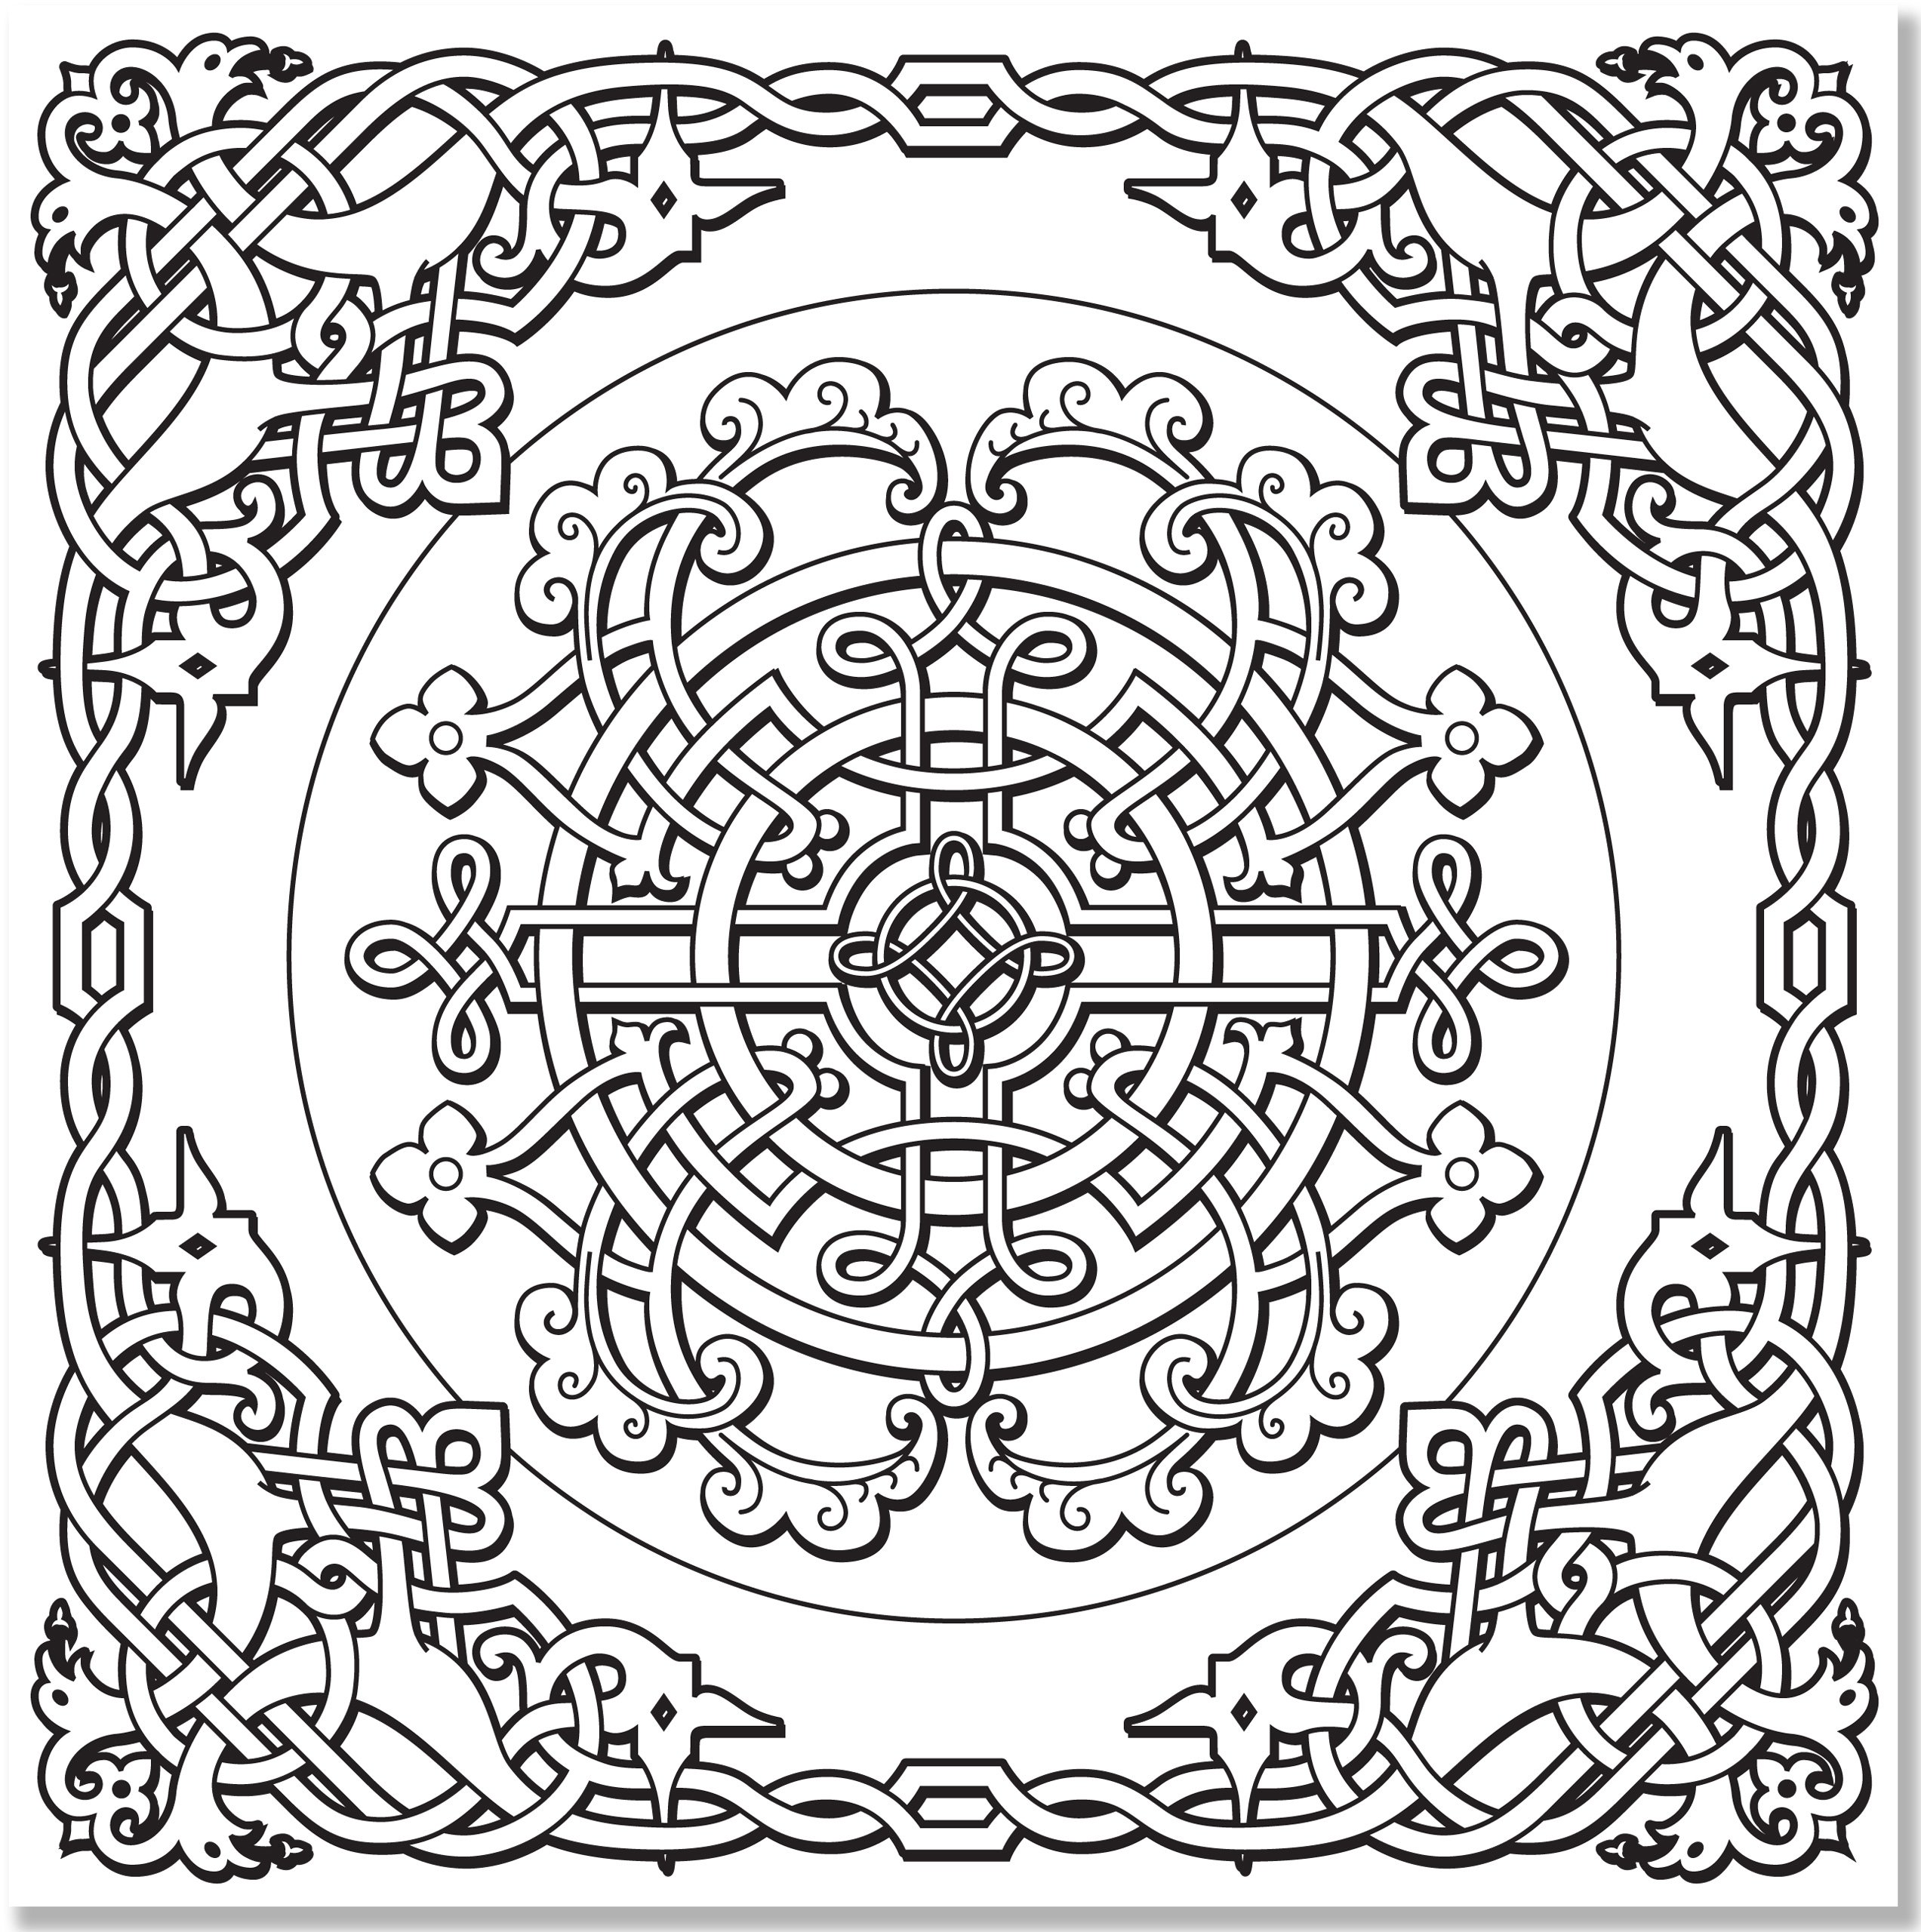 amazoncom celtic designs adult coloring book 31 stress relieving designs studio 9781441317438 peter pauper press books - Celtic Patterns To Colour